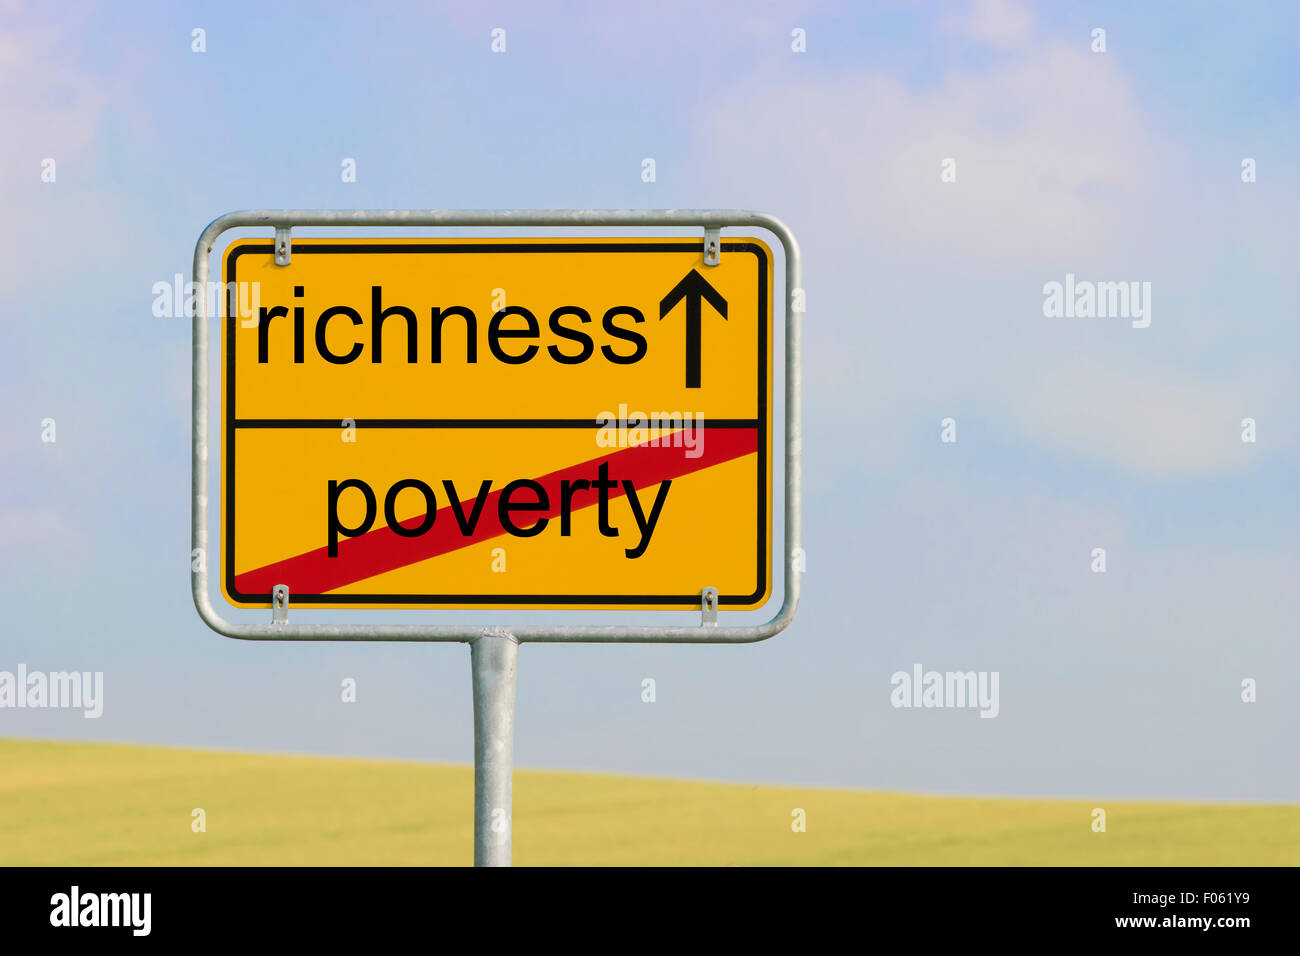 Yellow town sign with text 'poverty richness' - Stock Image